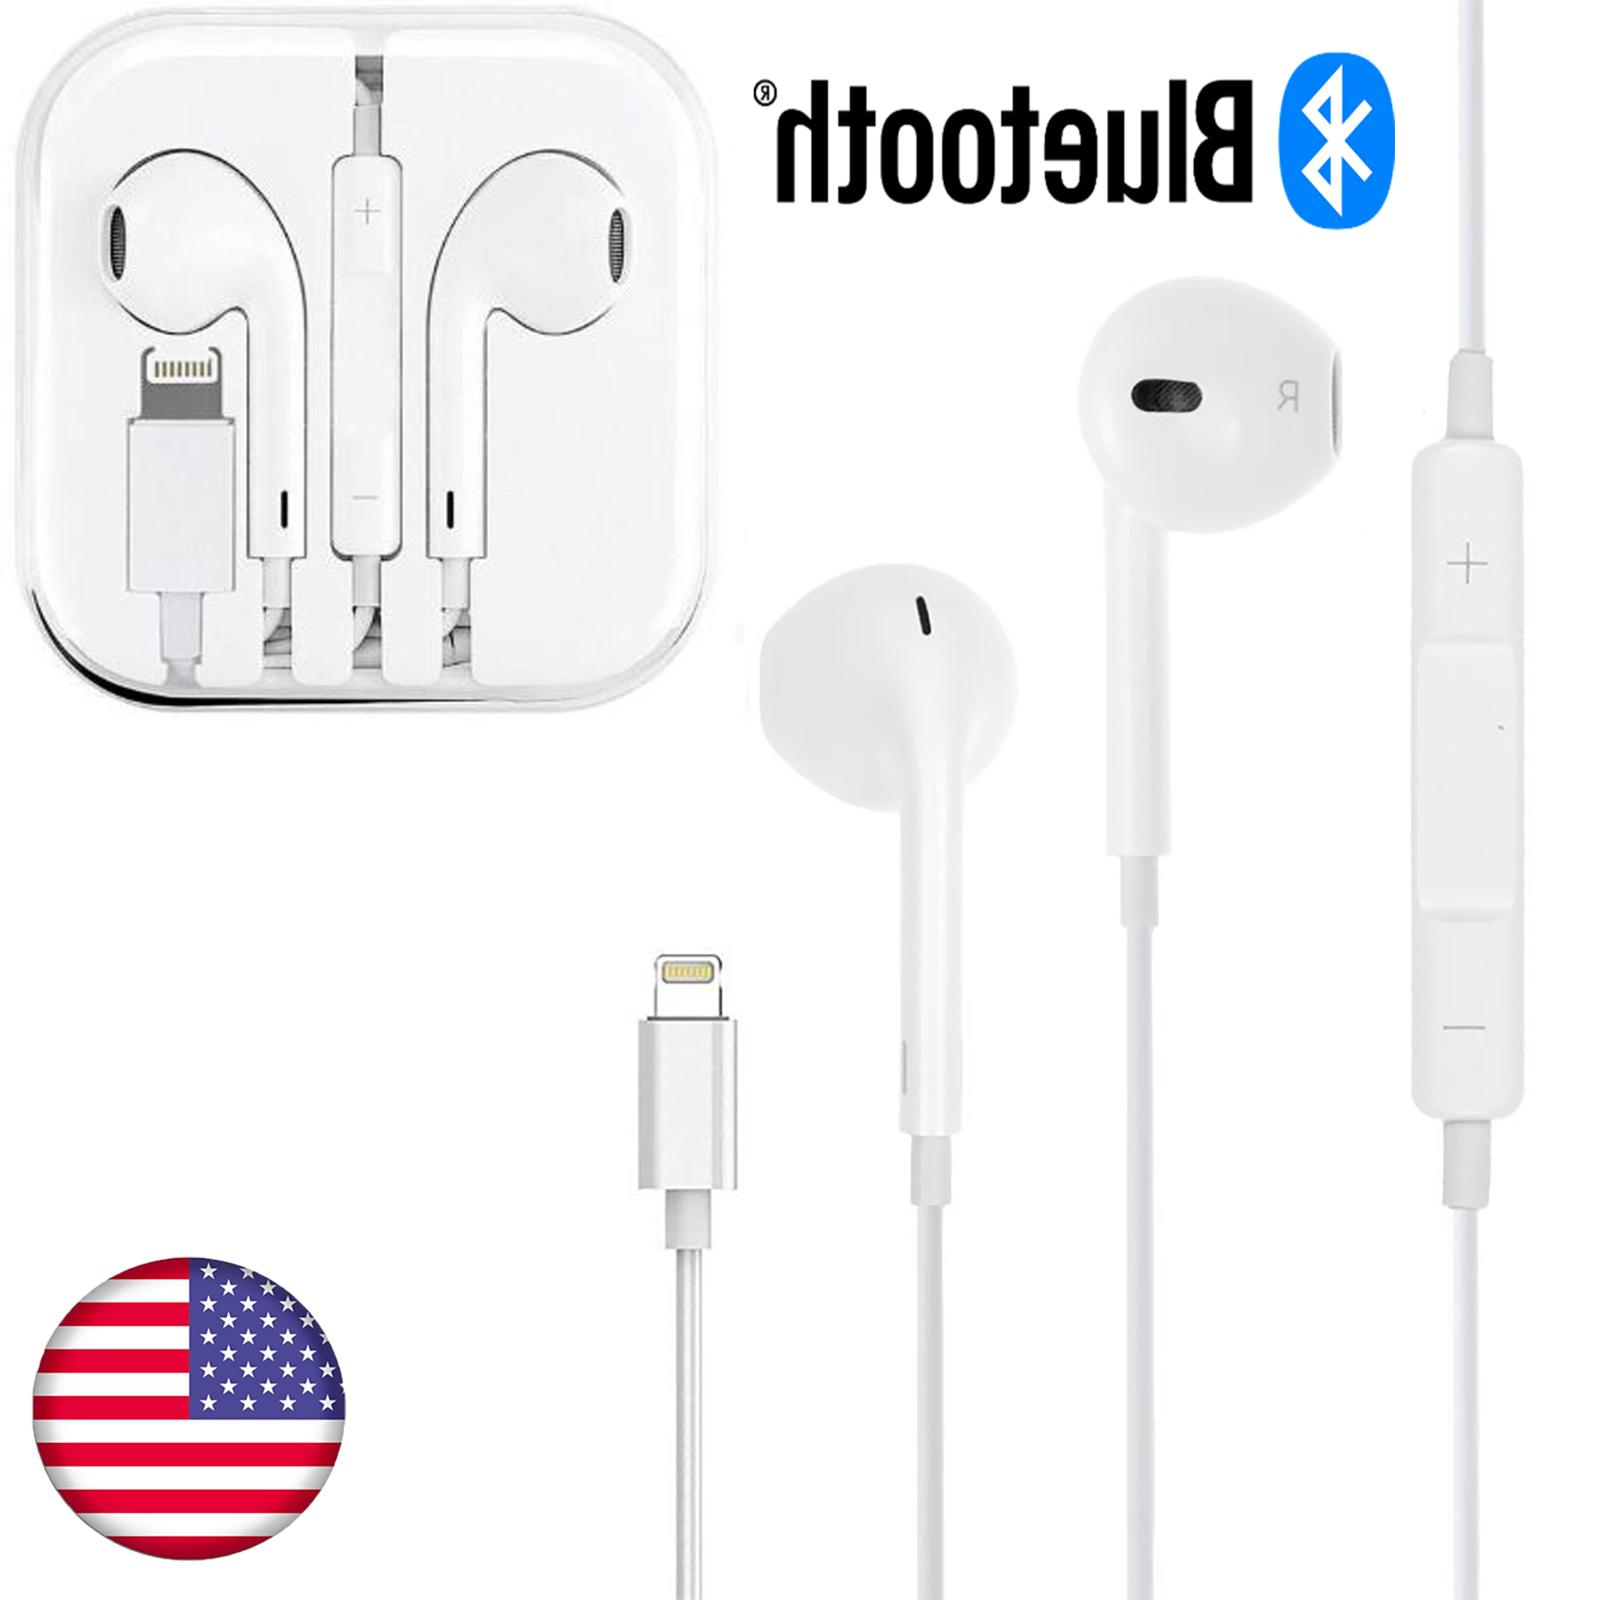 Oem Quality Headphones Bluetooth Earbuds Headsets For Apple